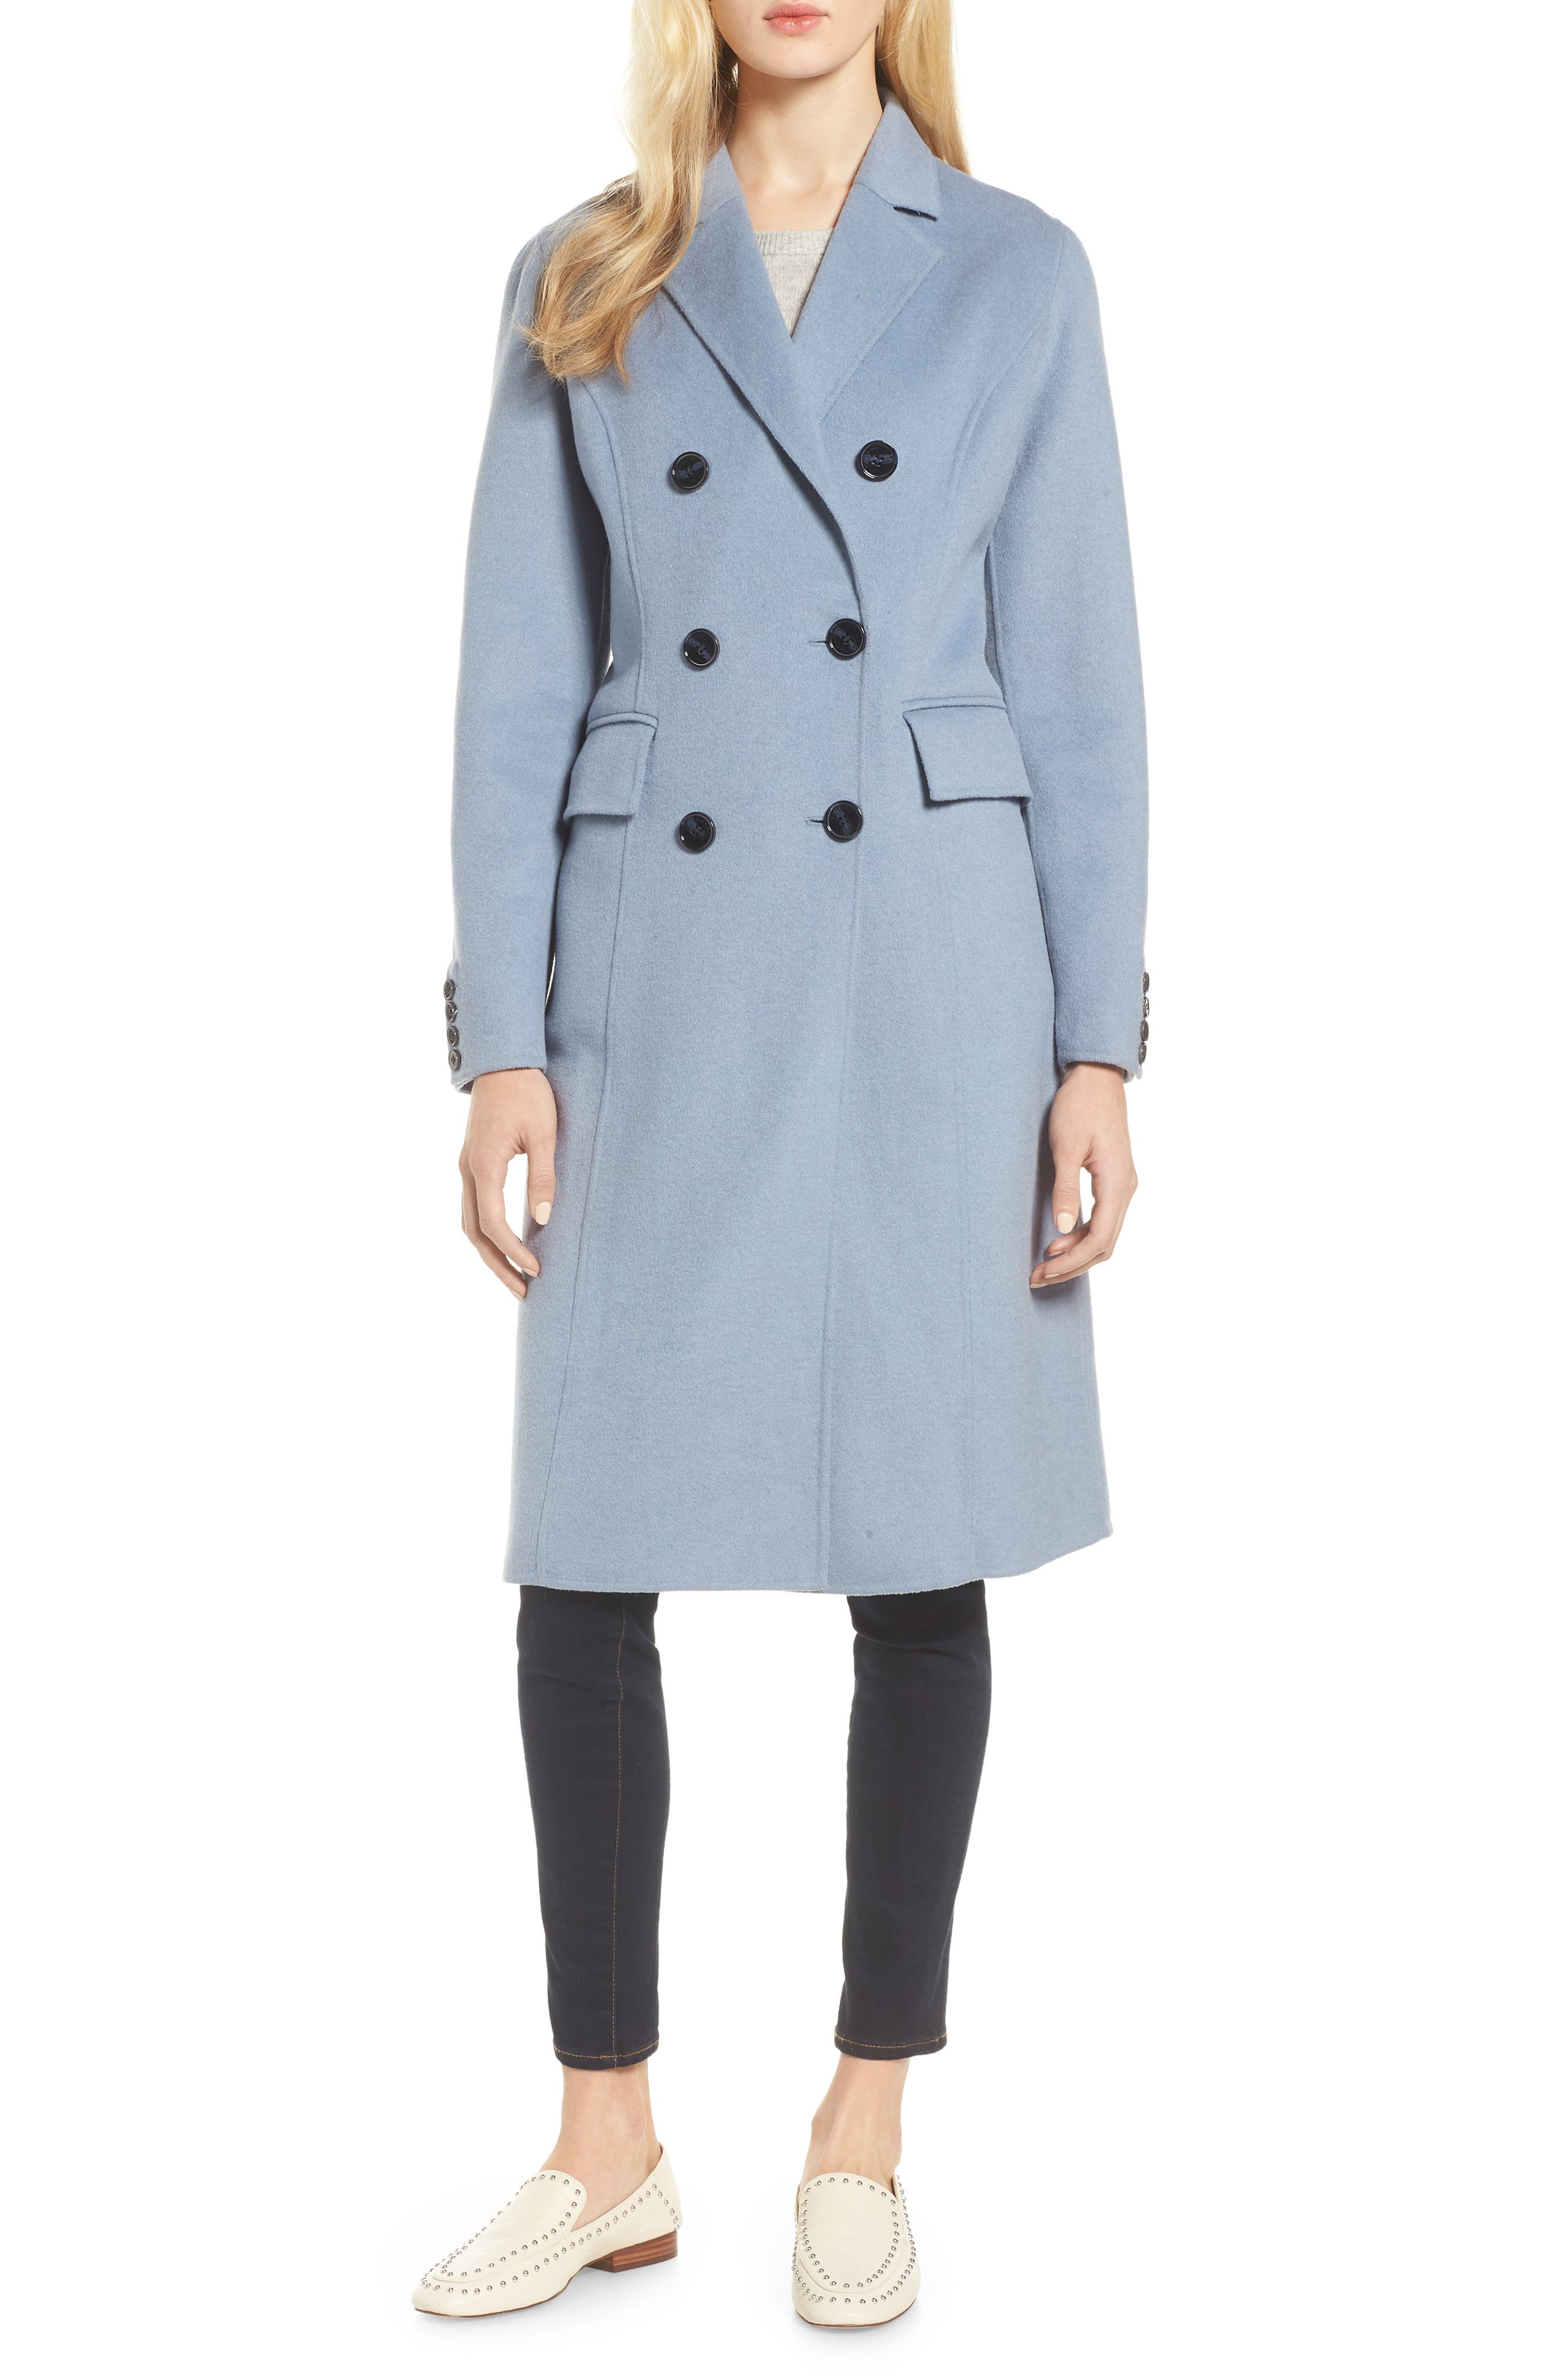 Taylor Double Breasted Wool Coat,                             Main thumbnail 1, color,                             PALE BLUE